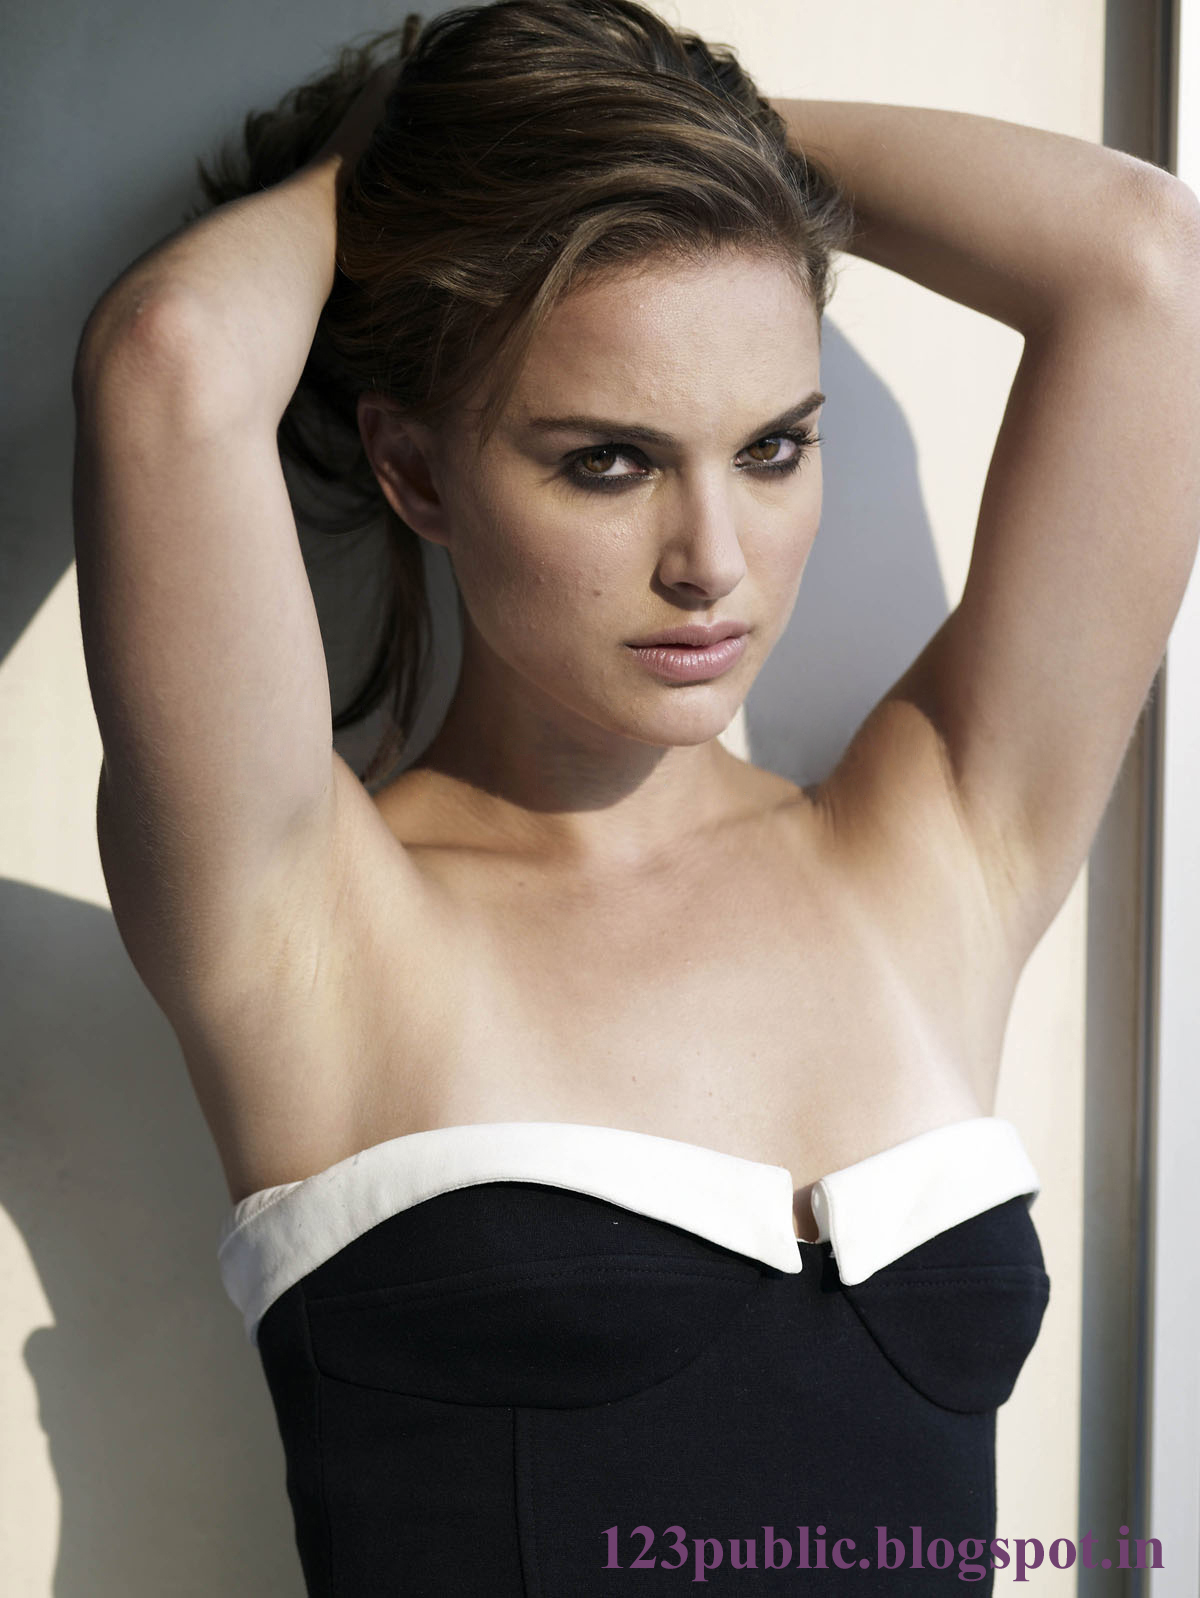 123public: USA actress... Natalie Portman